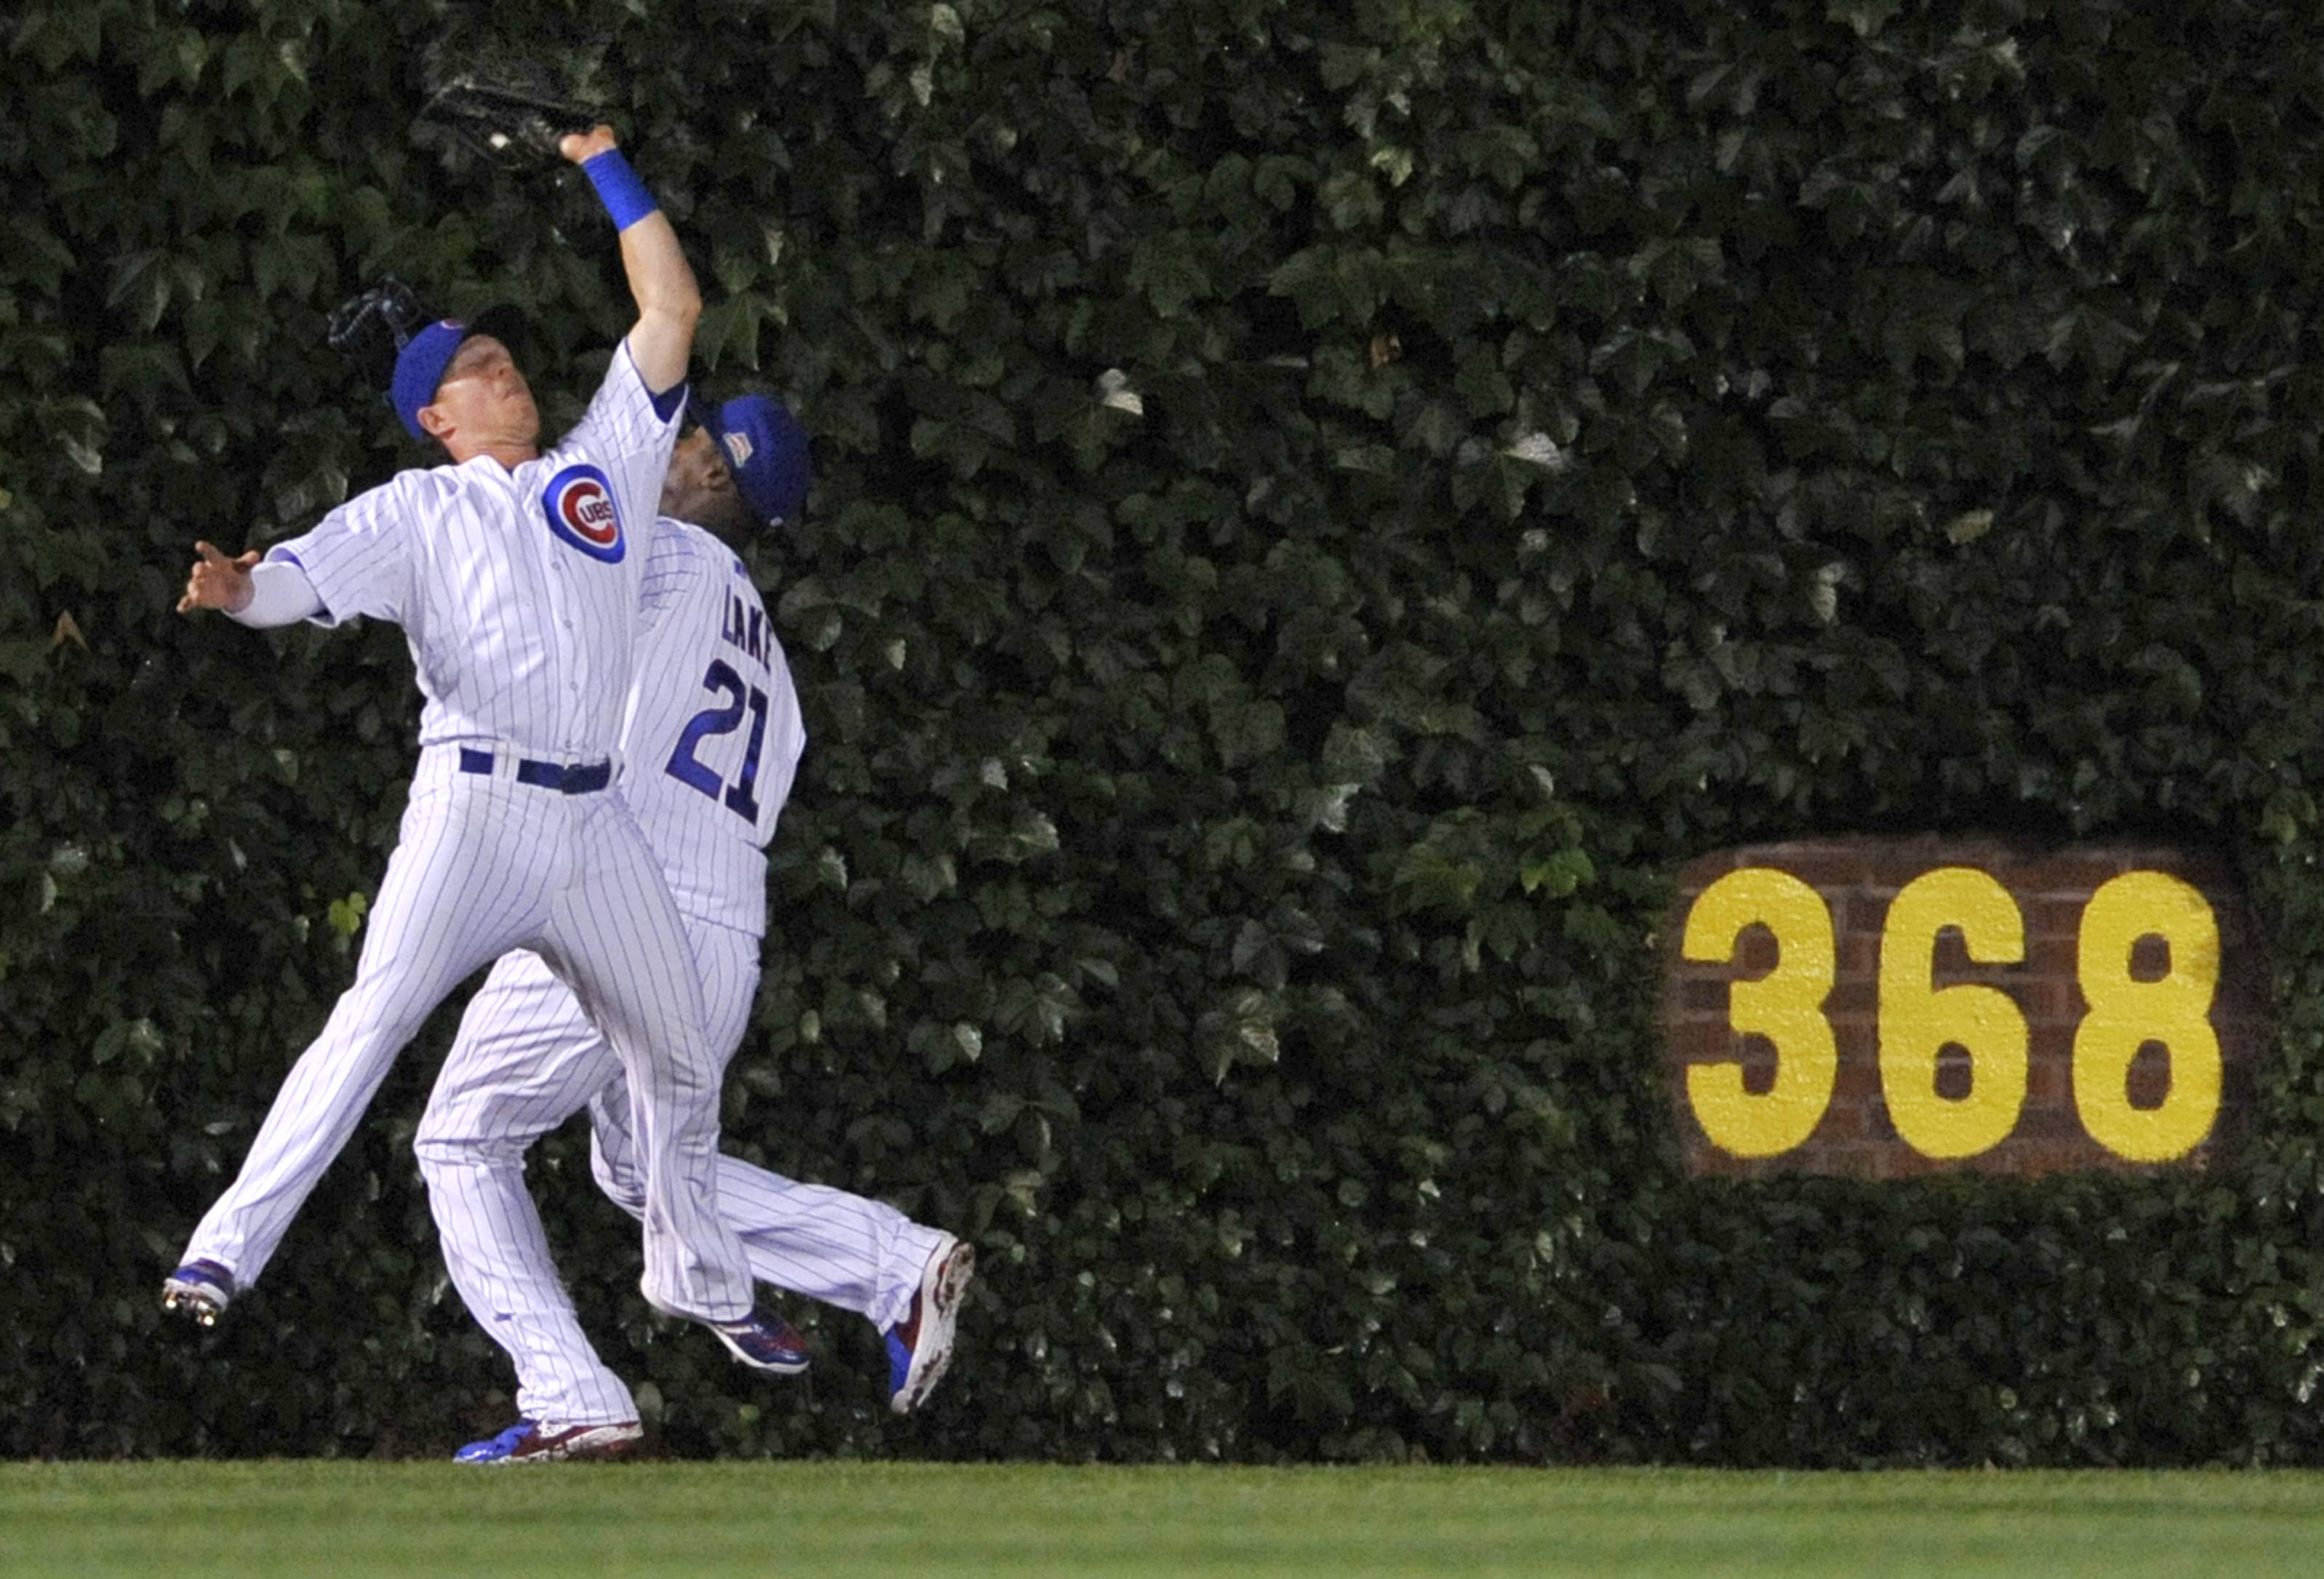 Resurgent Cubs hit speed bump vs. Pirates